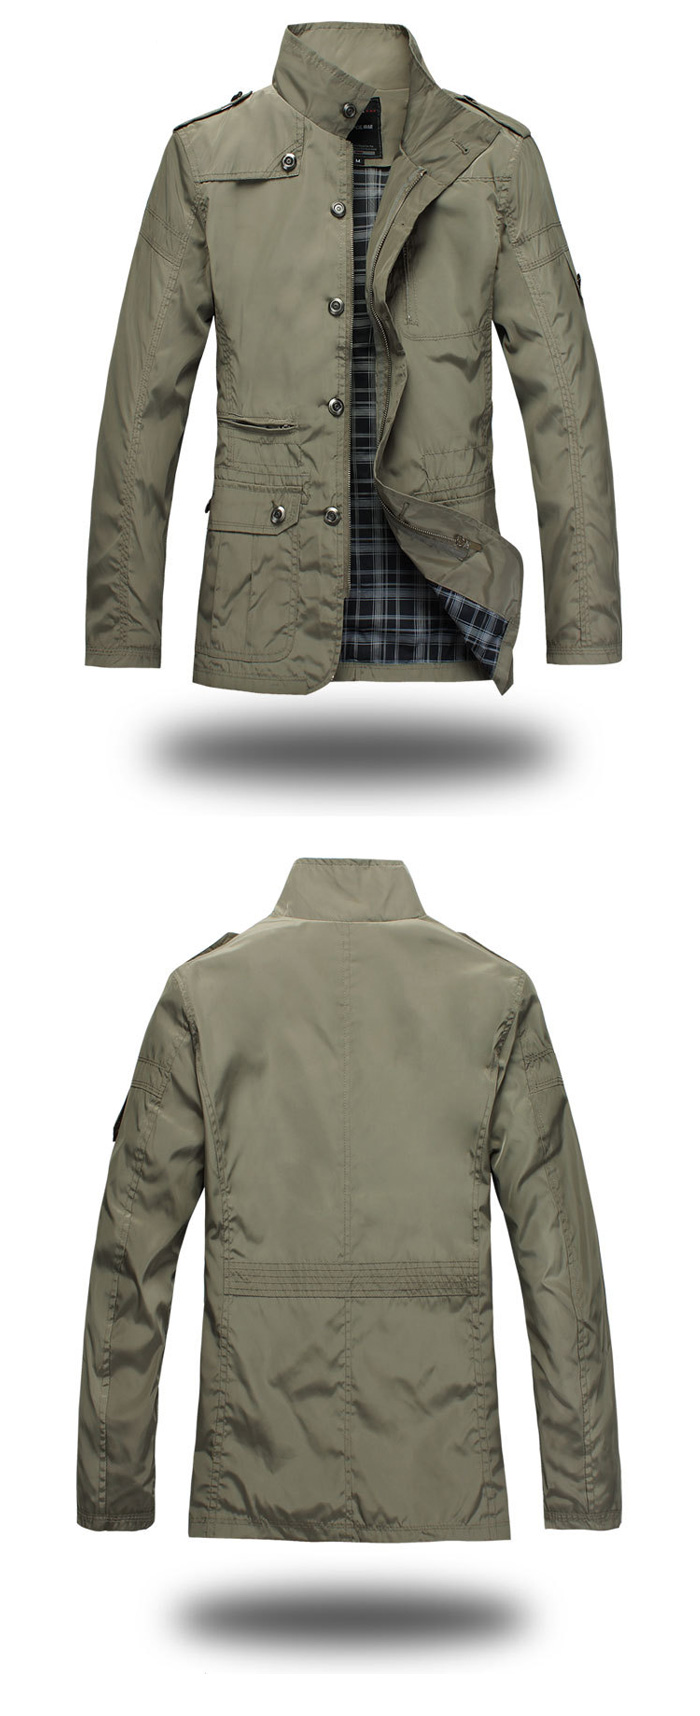 Patched Men Slim Fit Jacket Stand-up Collar Windbreaker